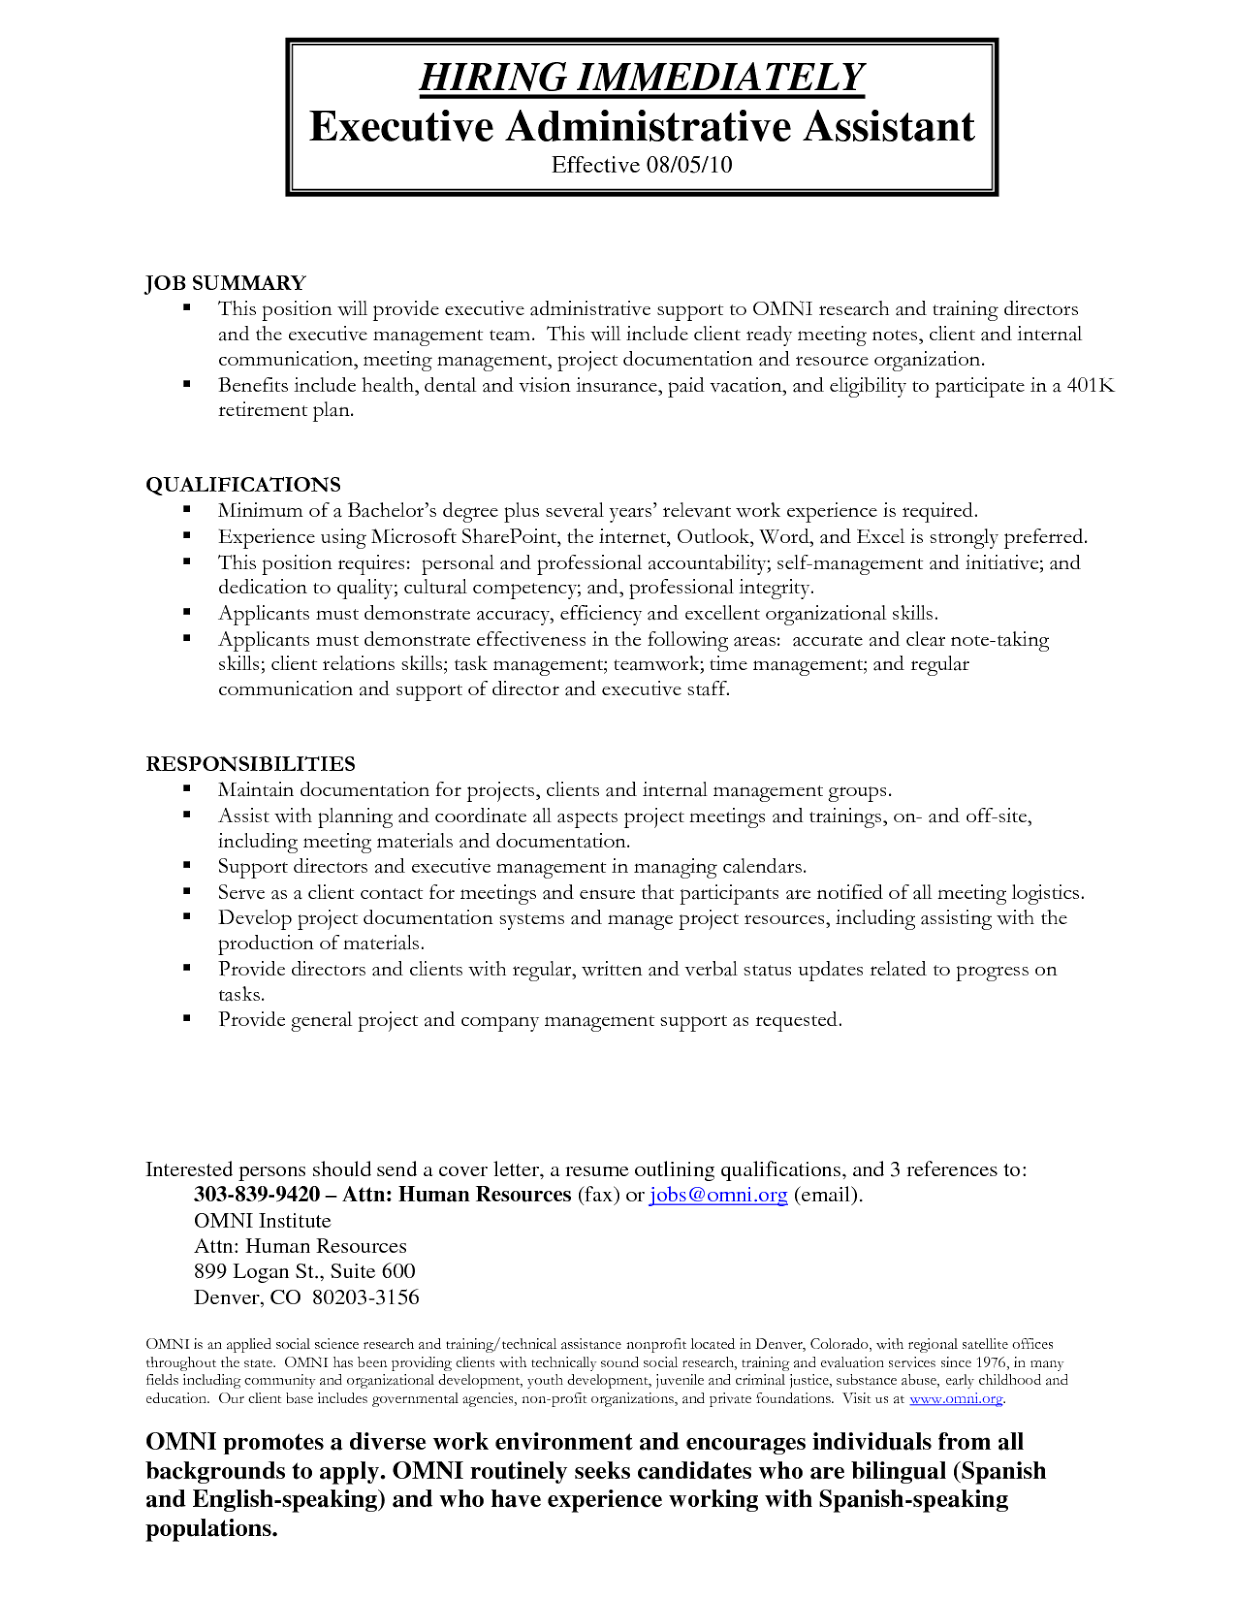 cover letter executive assistant role resume samples administrative assistant cover letter resume happytom co resume samples administrative assistant cover letter